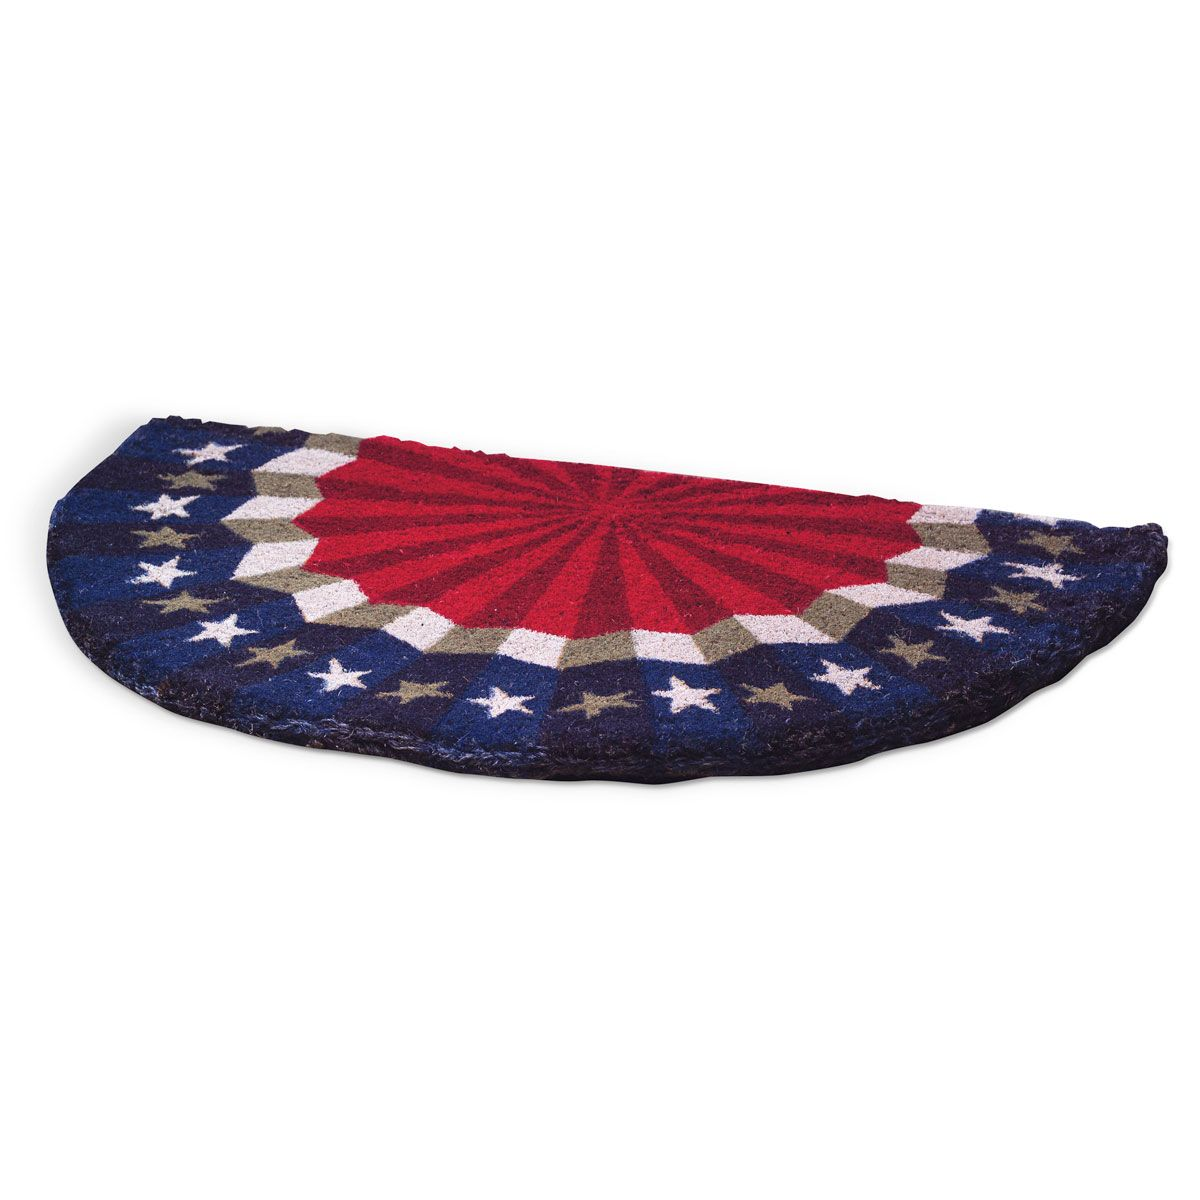 Bunting Patriotic Personalized Doormat